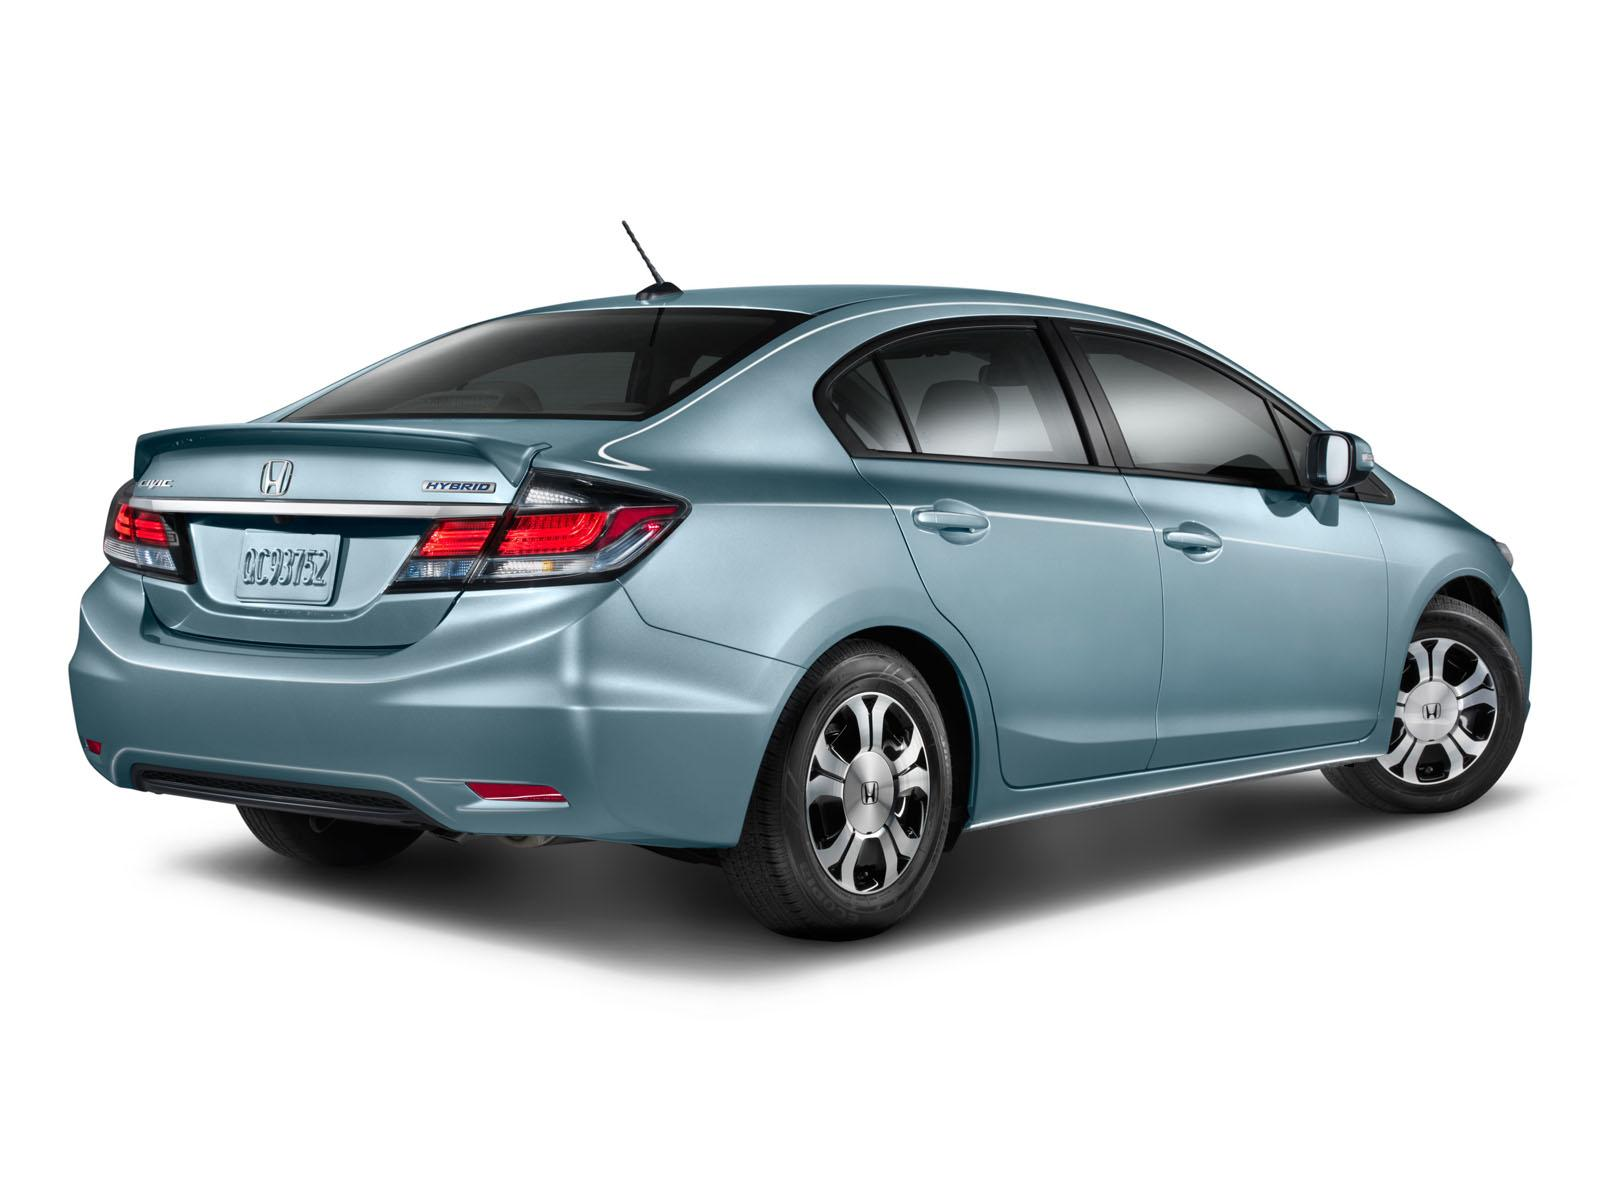 2014 Honda Civic Hybrid And CNG